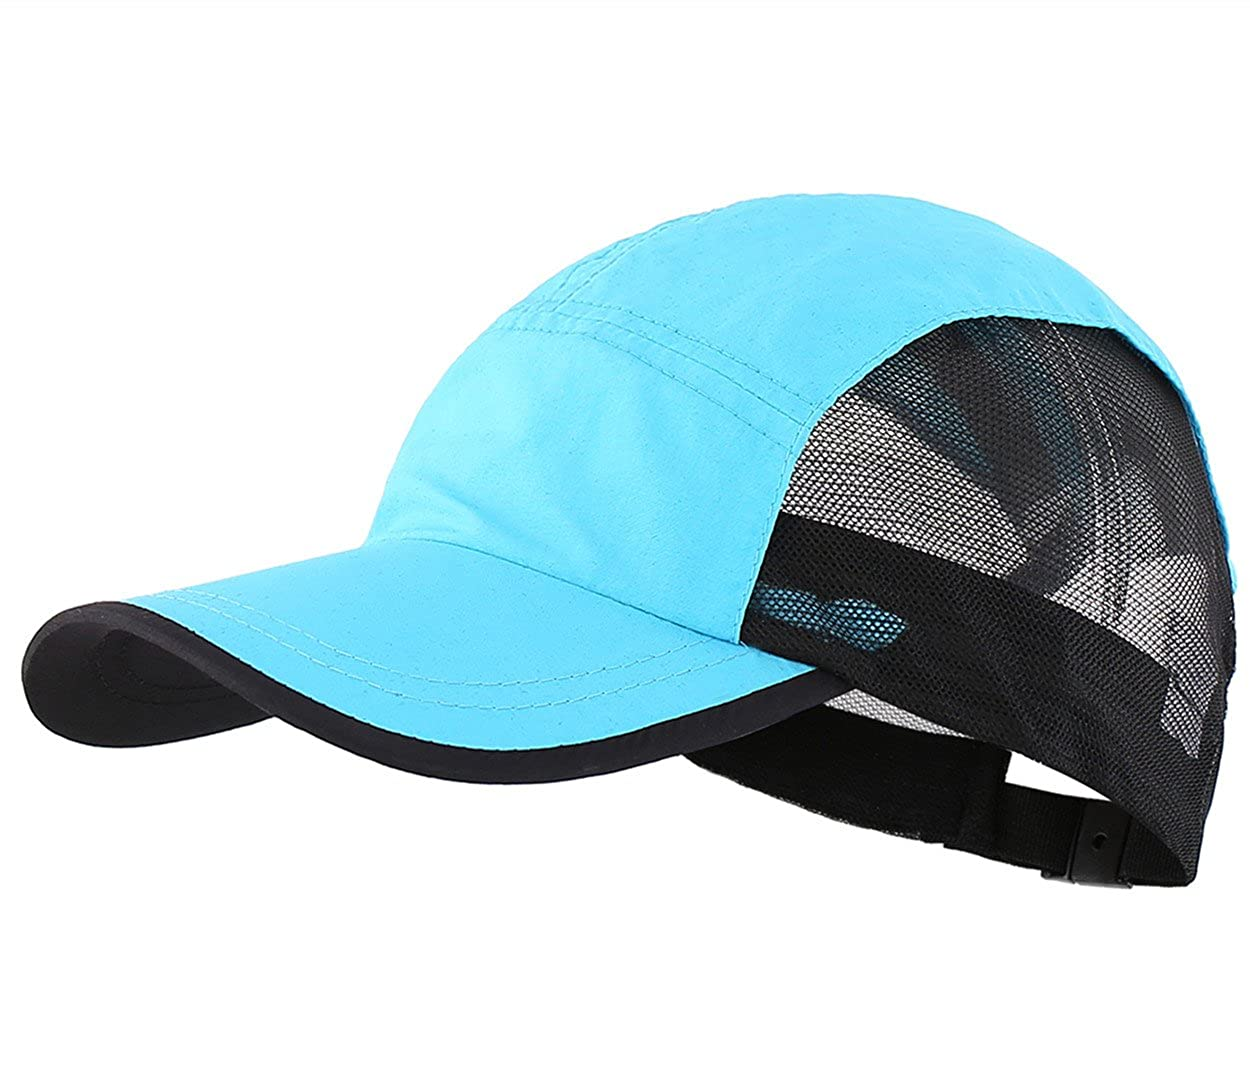 Magracy Kids Boys Quick Drying Sun Cap Summer UV Protection Cap Adjustable Mesh Sports Hat